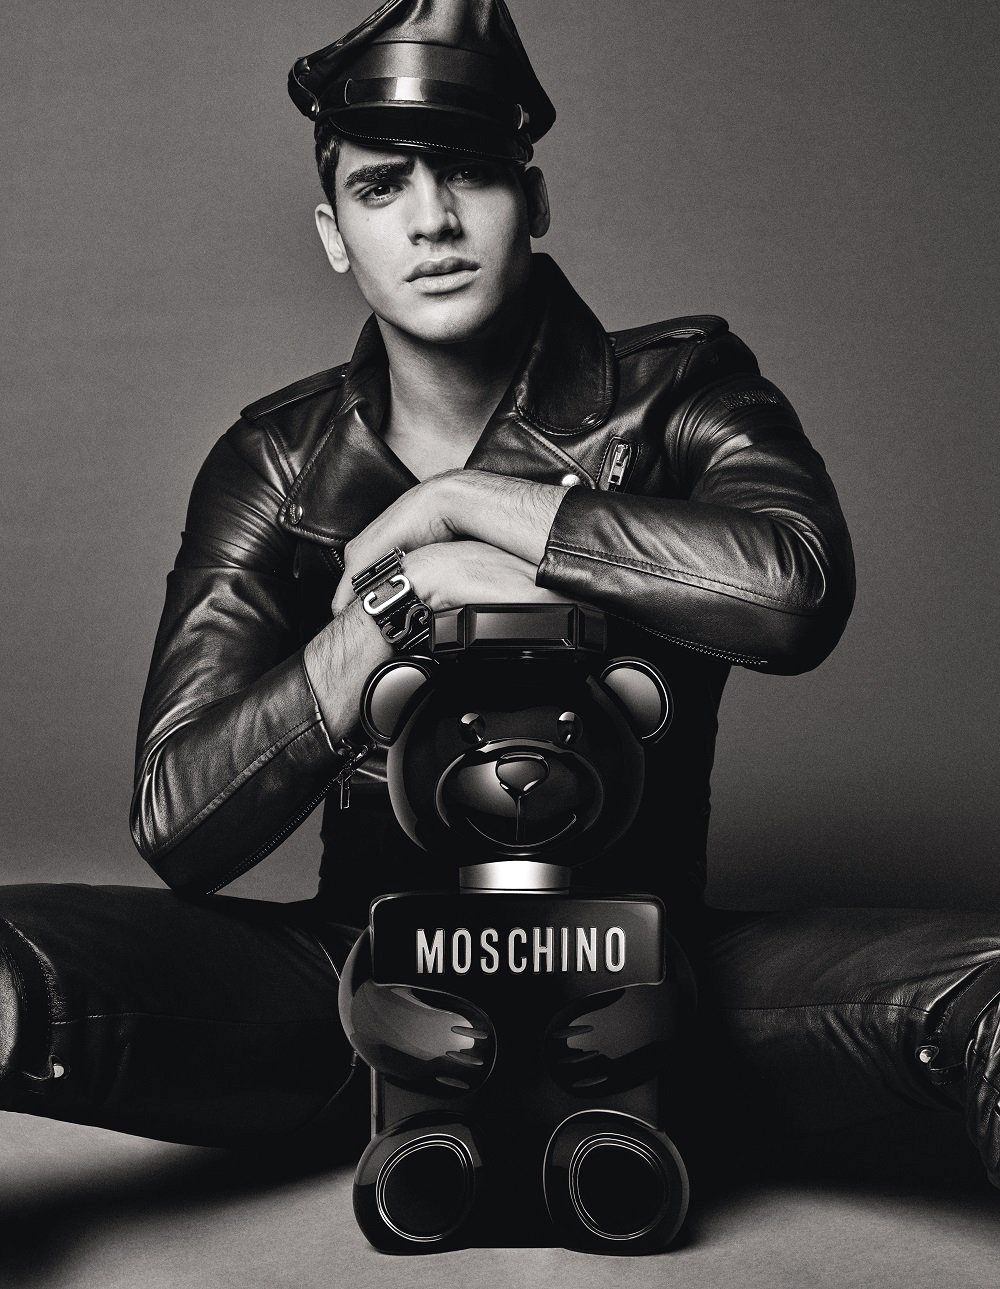 moschino_toy_boy_fragrance_summer_2019_campaign3.jpeg